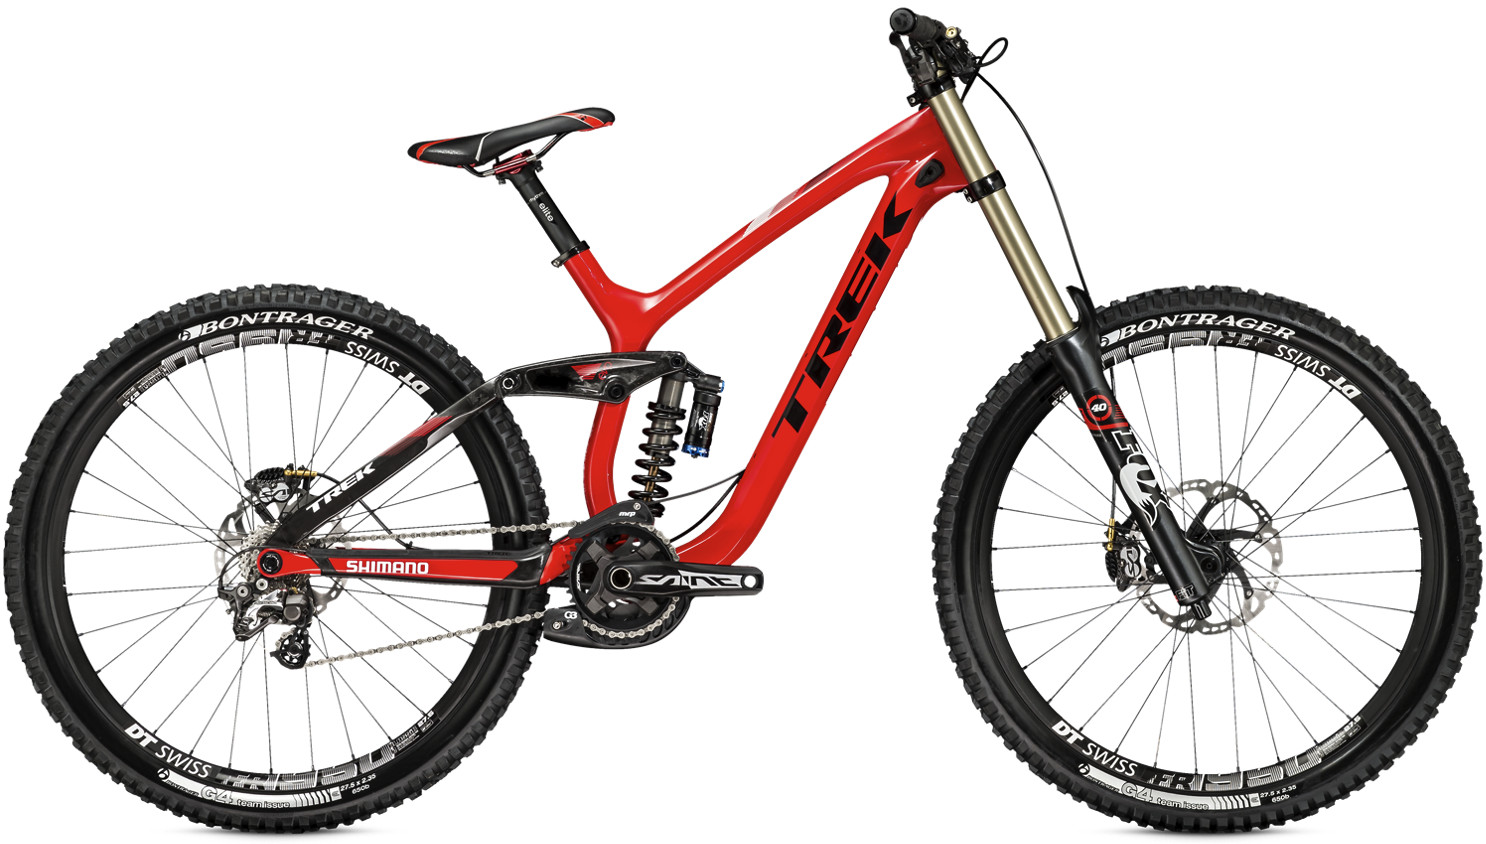 2015 Trek Session 9 9 Dh 27 5 Bike Reviews Comparisons